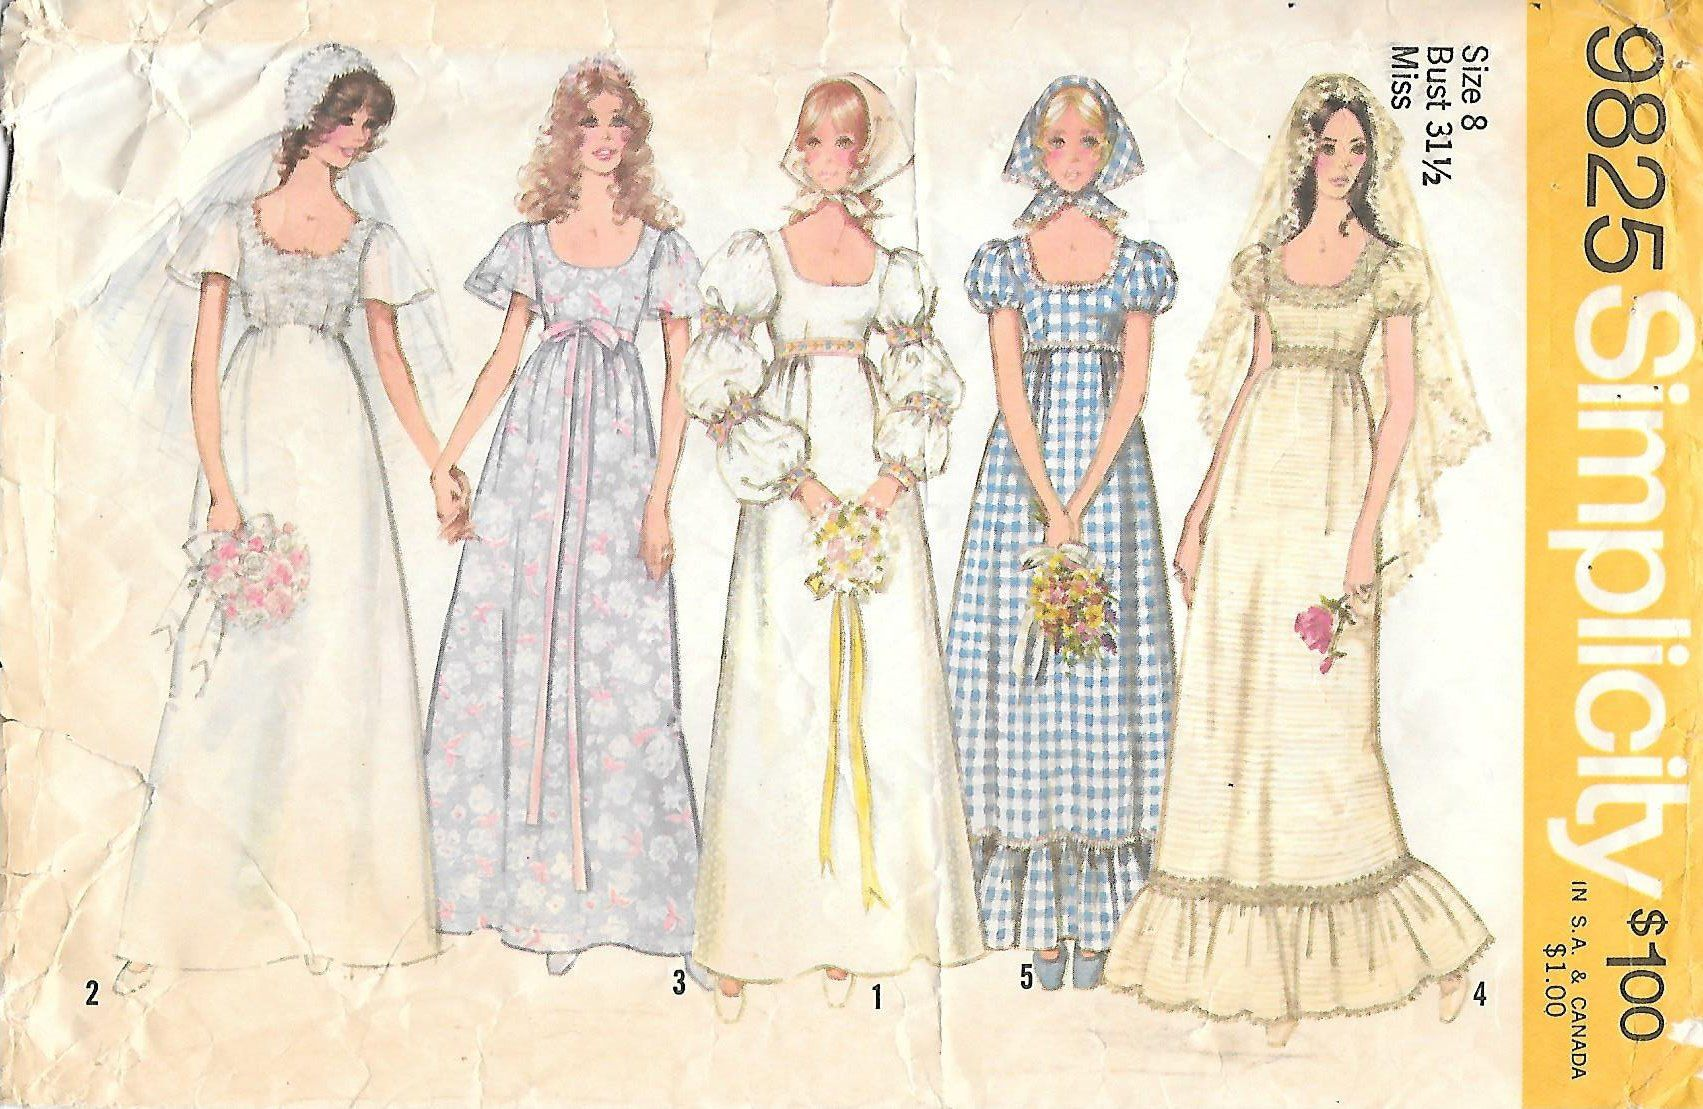 1970s Simplicity 9825 Peasant Style Wedding And Bridesmaid Dresses Vintage Sewing Patt Simplicity Patterns Dresses Wedding Dress Patterns Bridal Dress Patterns